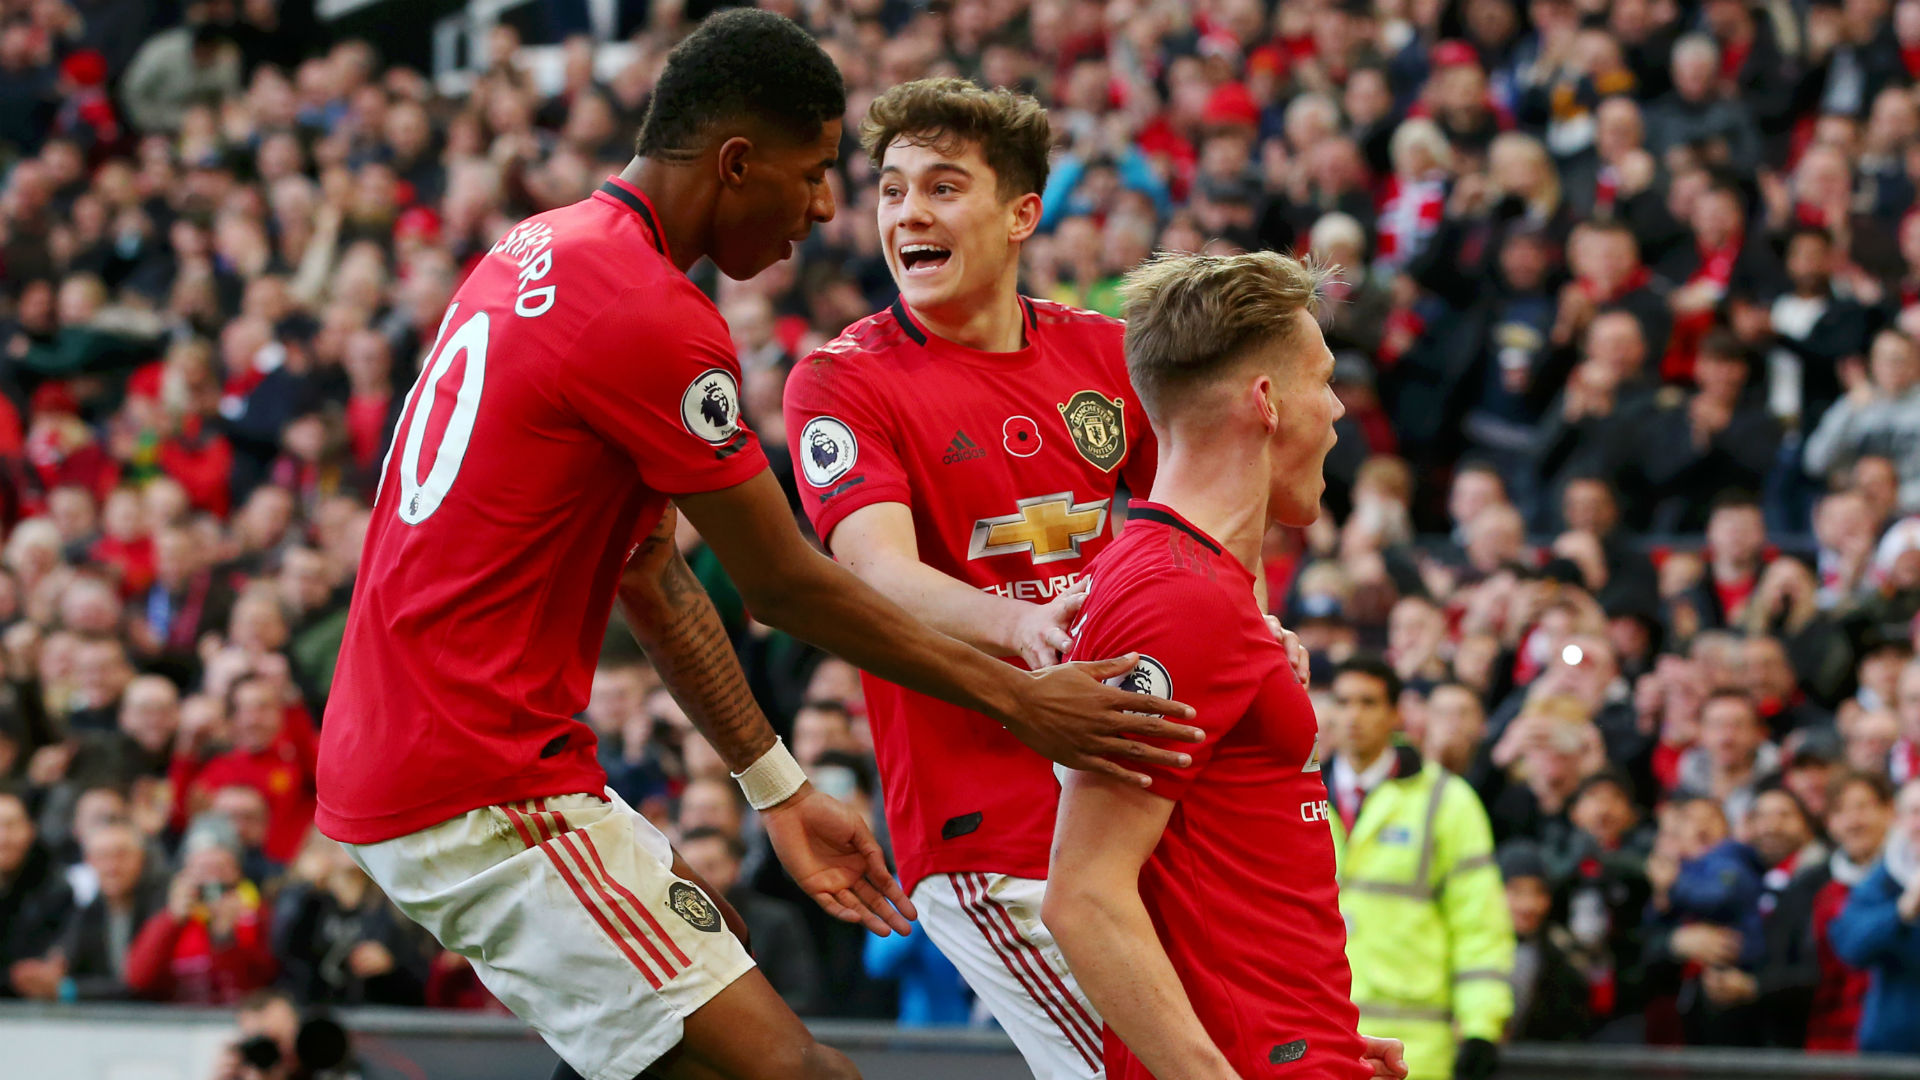 'We could have scored seven or eight' - James encouraged by Man Utd's attacking display